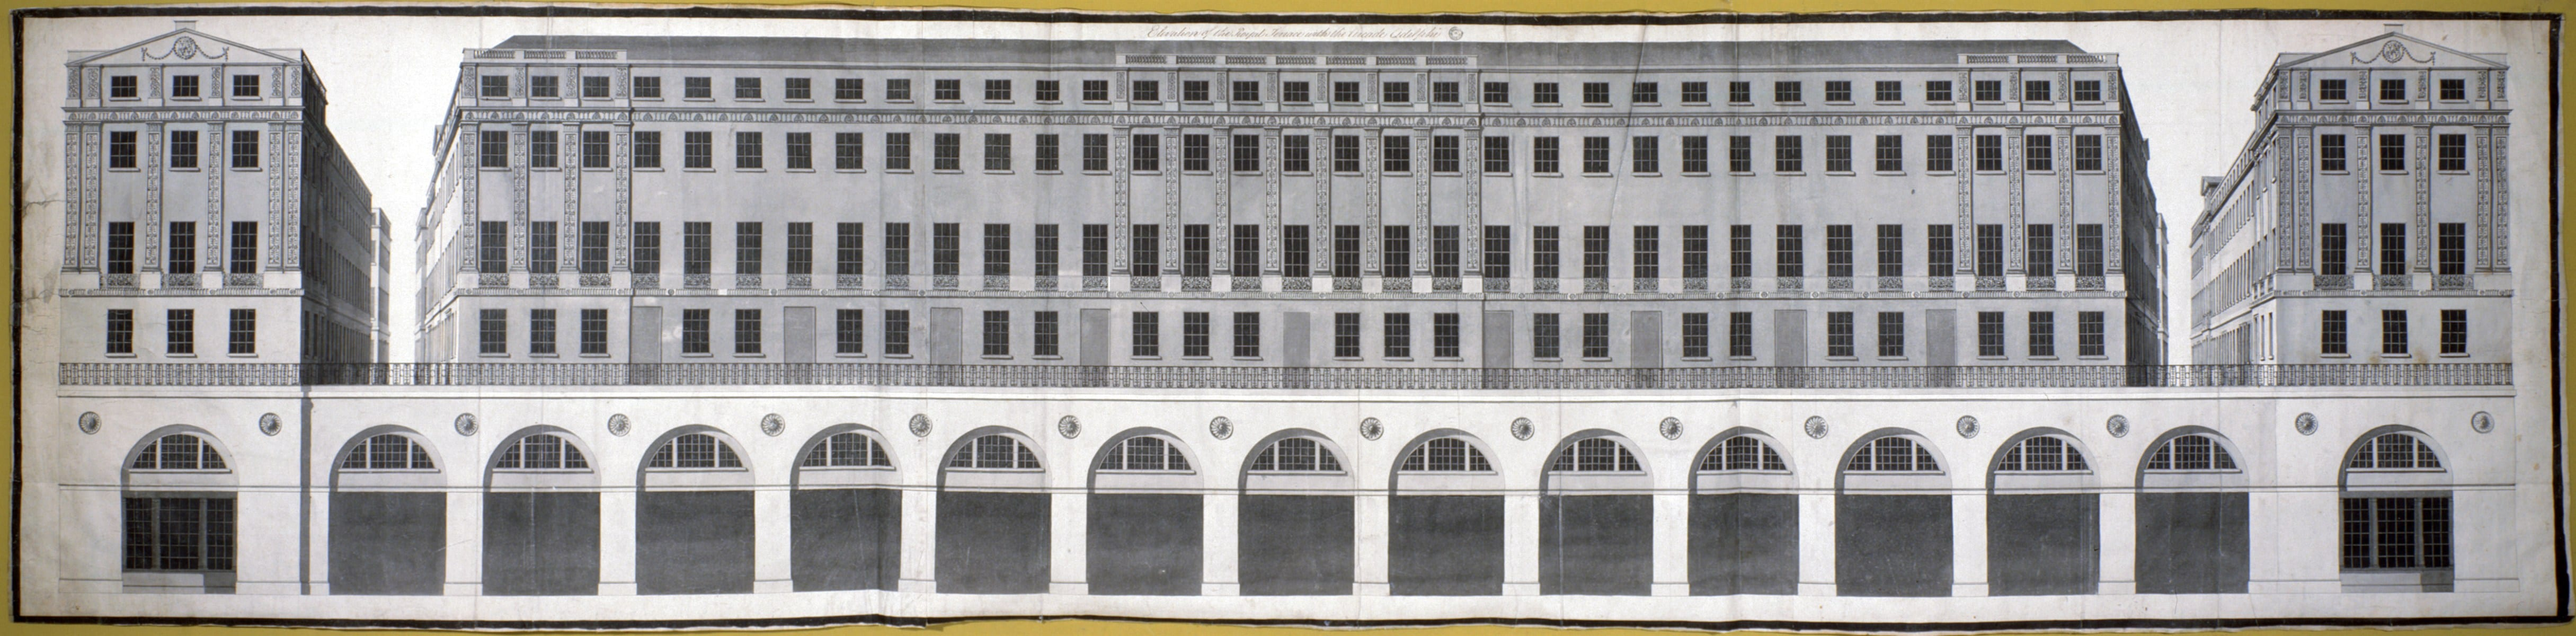 3 Adam office design for the riverfront elevation of the Adelphi development. Sir John Soane's Museum (Adam vol. 32/10)